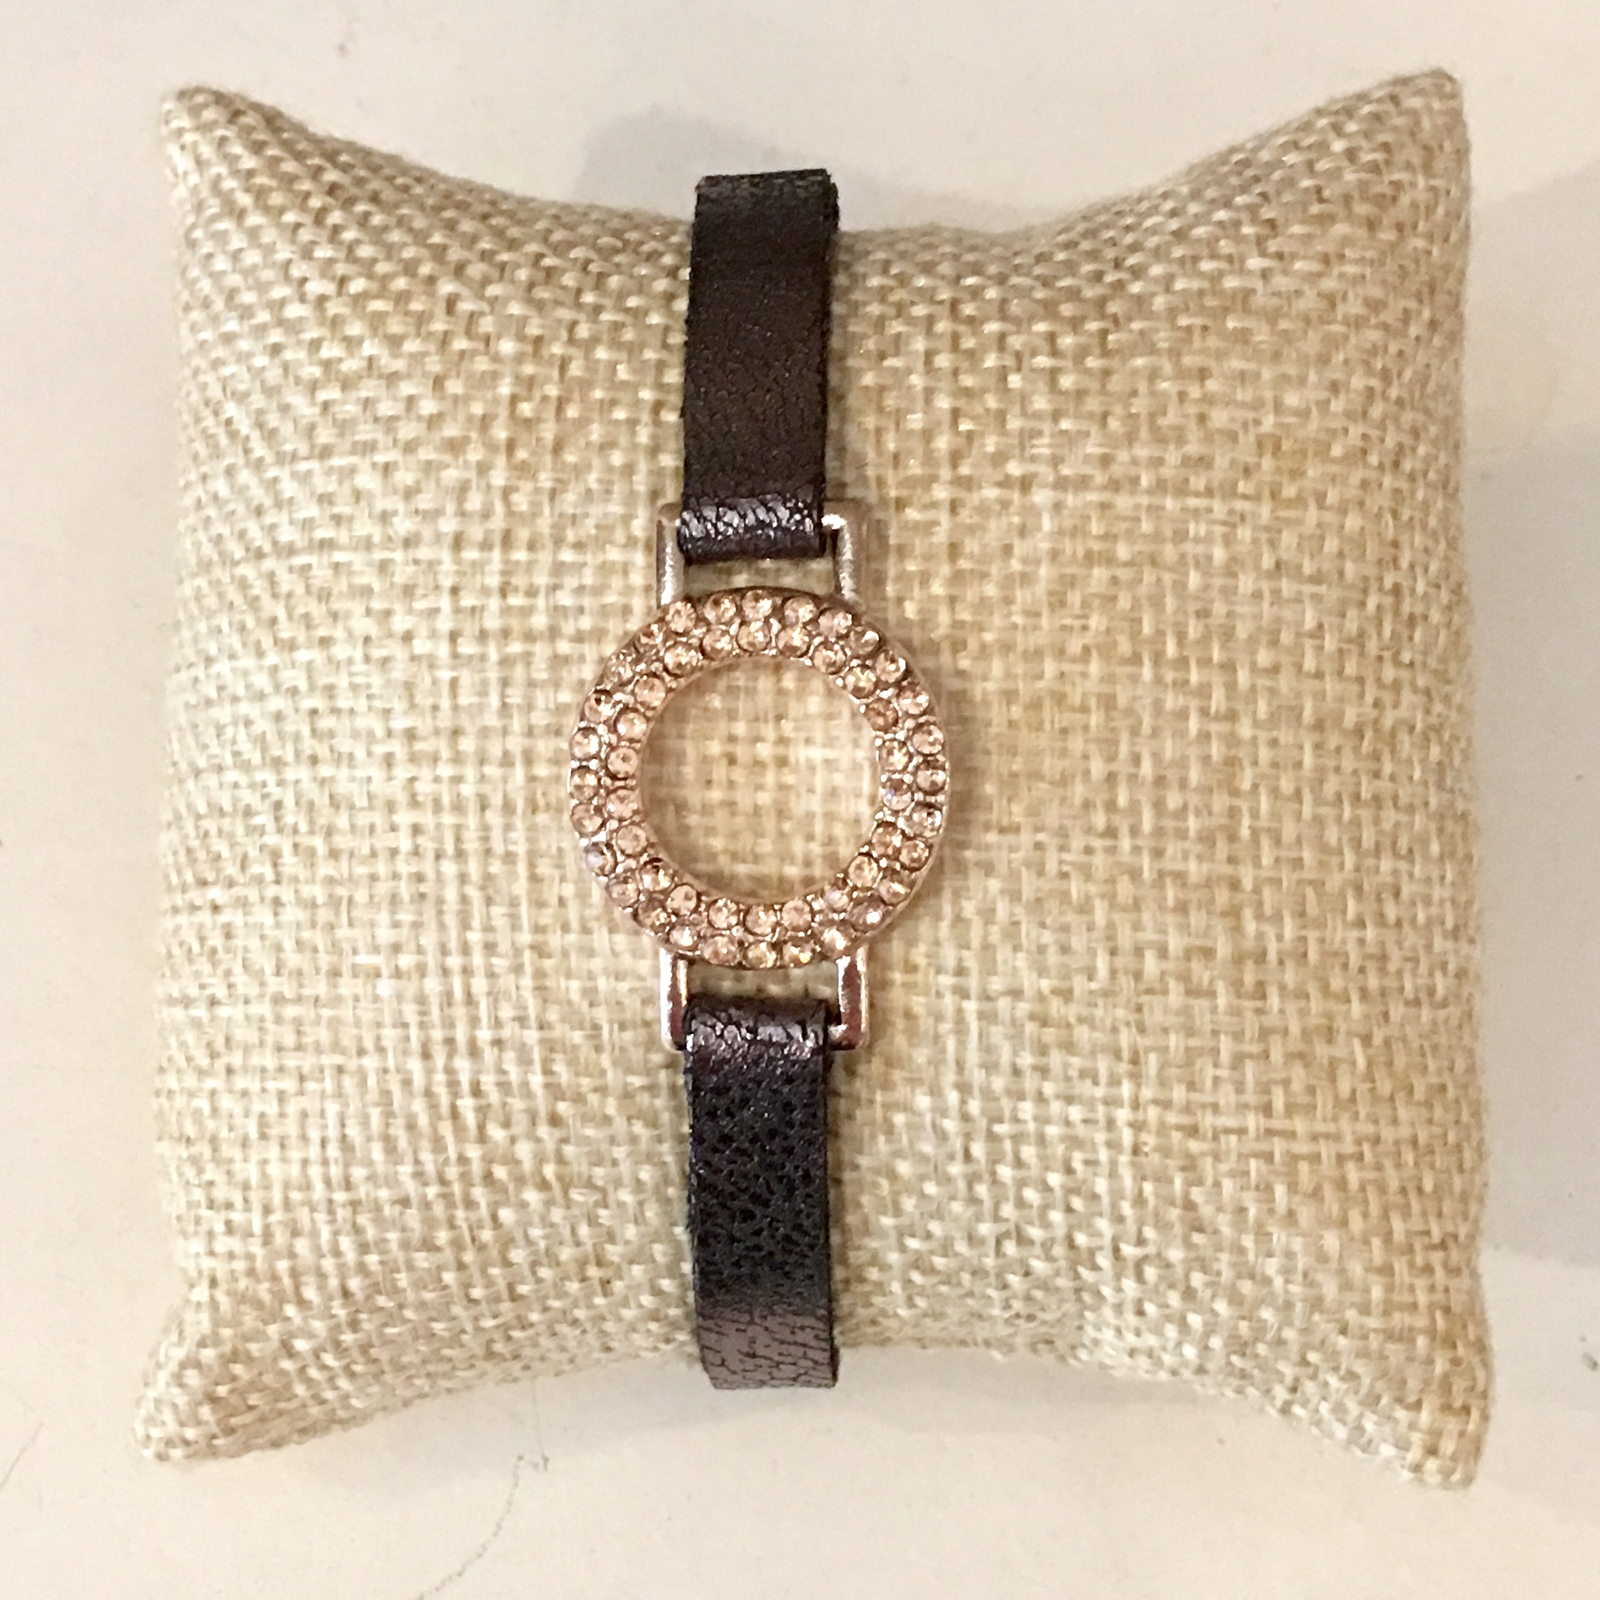 Metallic Leather Bracelet, Narrow Metallic Leather Bracelet, Rose Gold Pave Ring